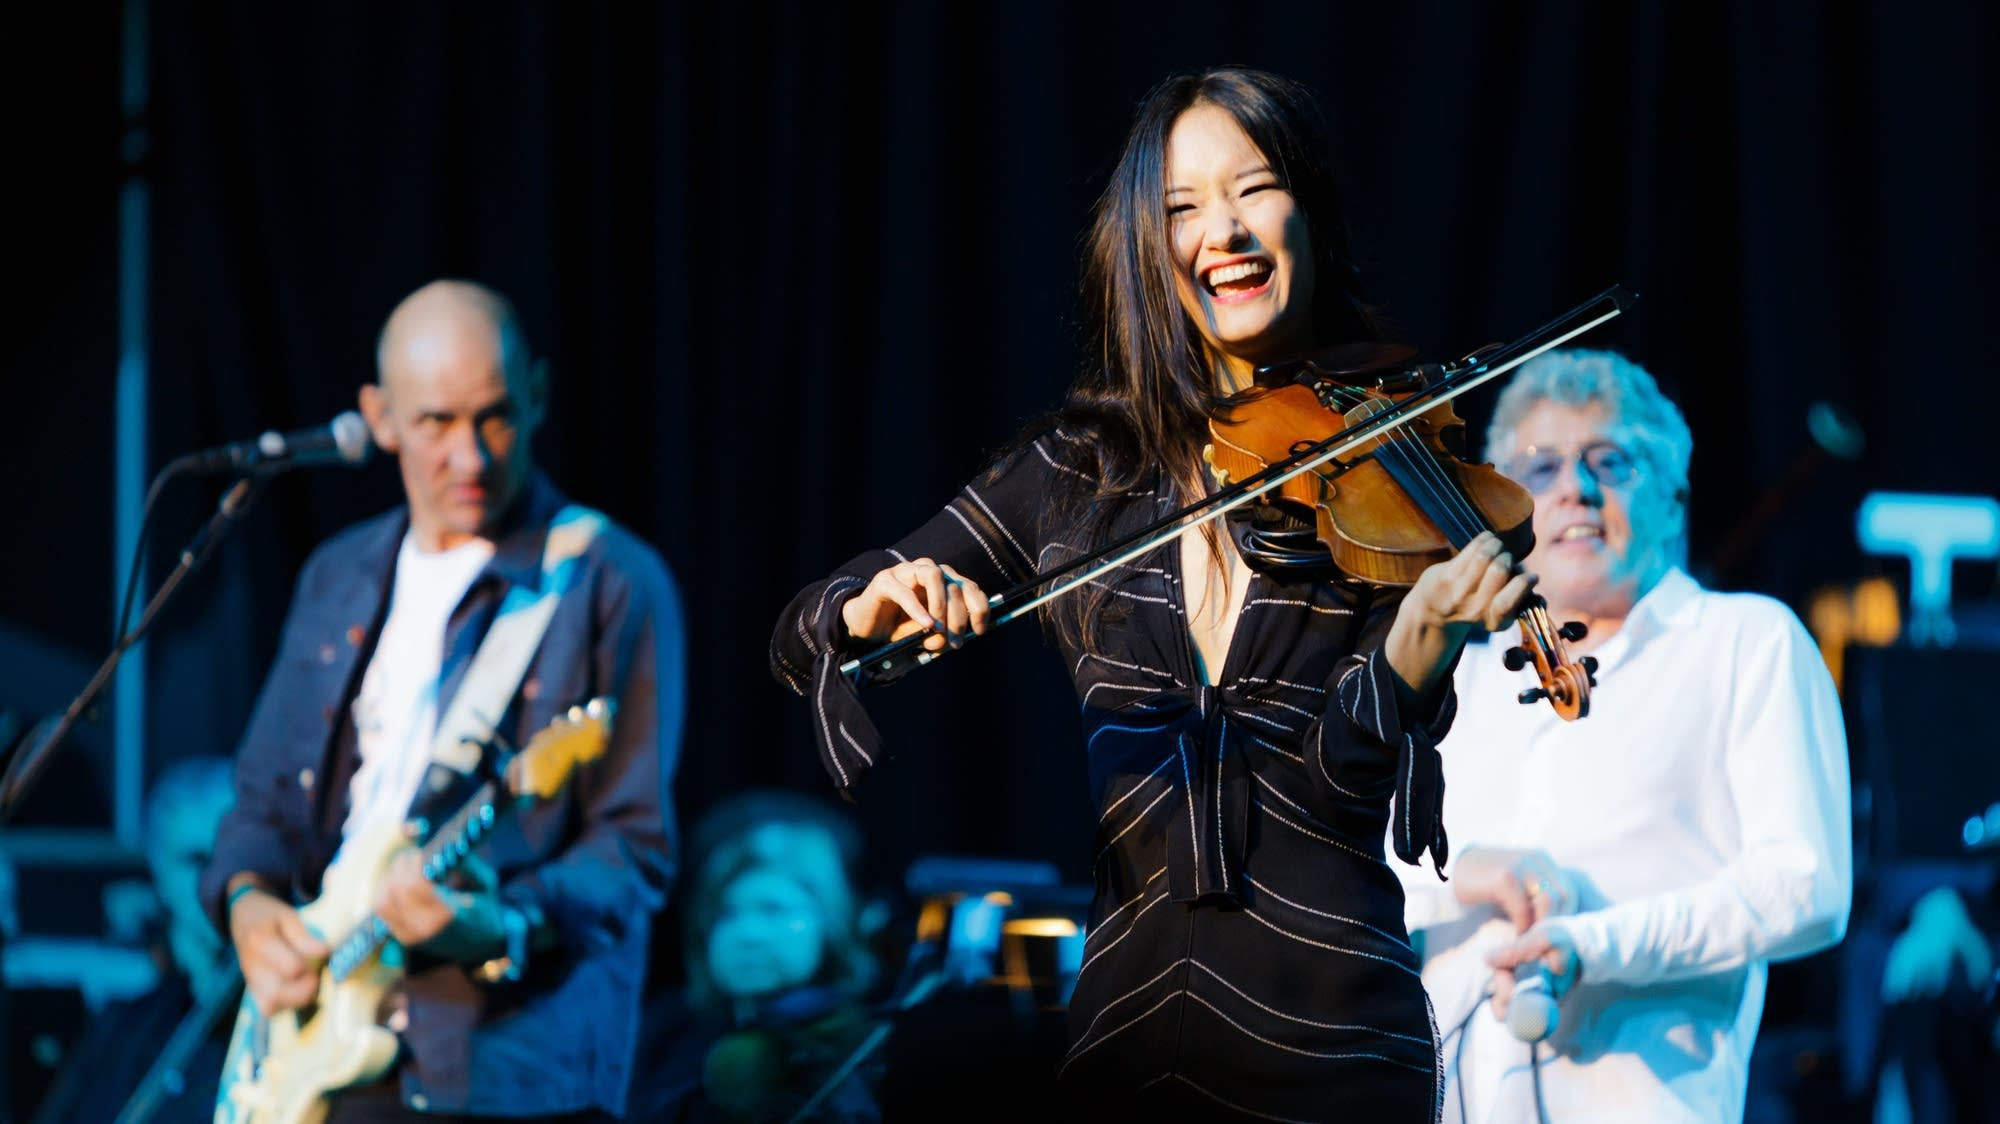 Katie Jacoby is the featured violinist for the Who's Moving On tour.